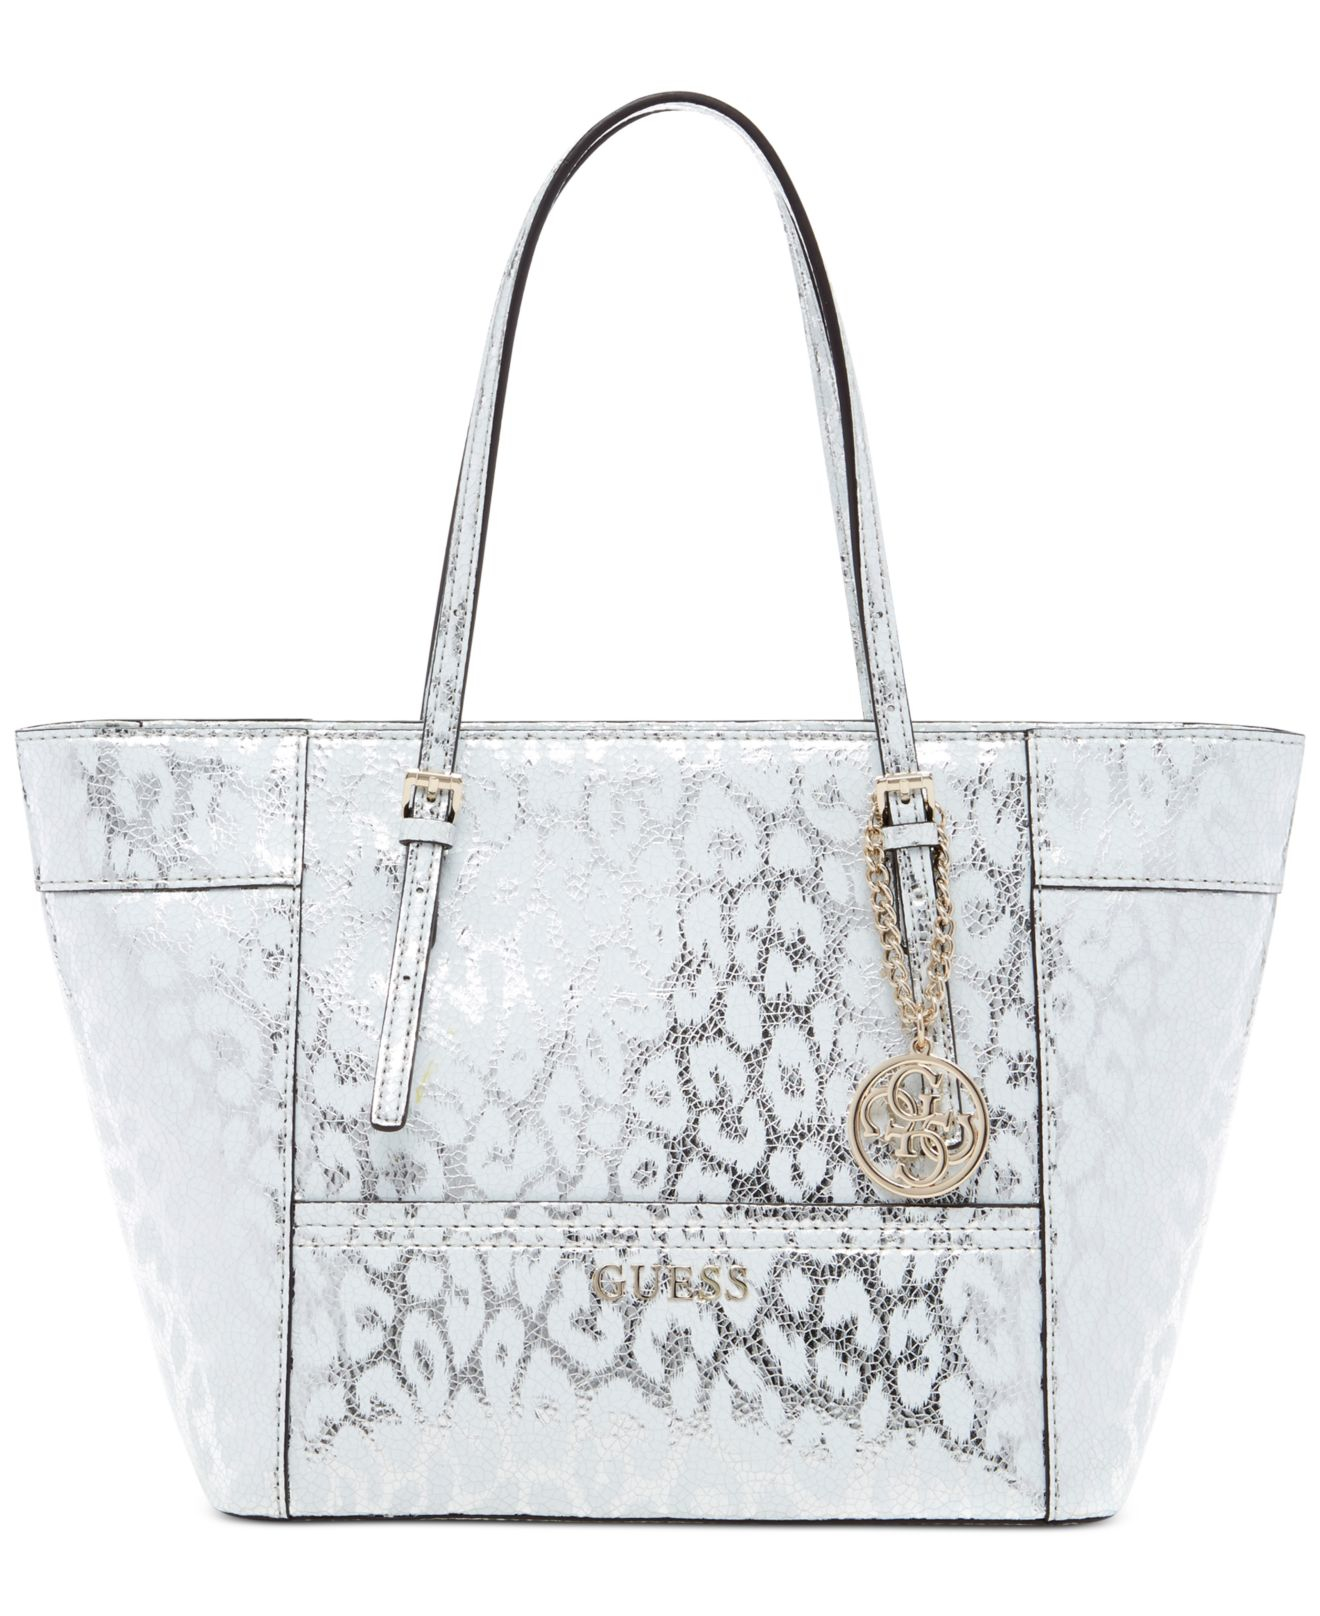 15319dd976 Guess Delaney Small Classic Tote in Blue - Lyst